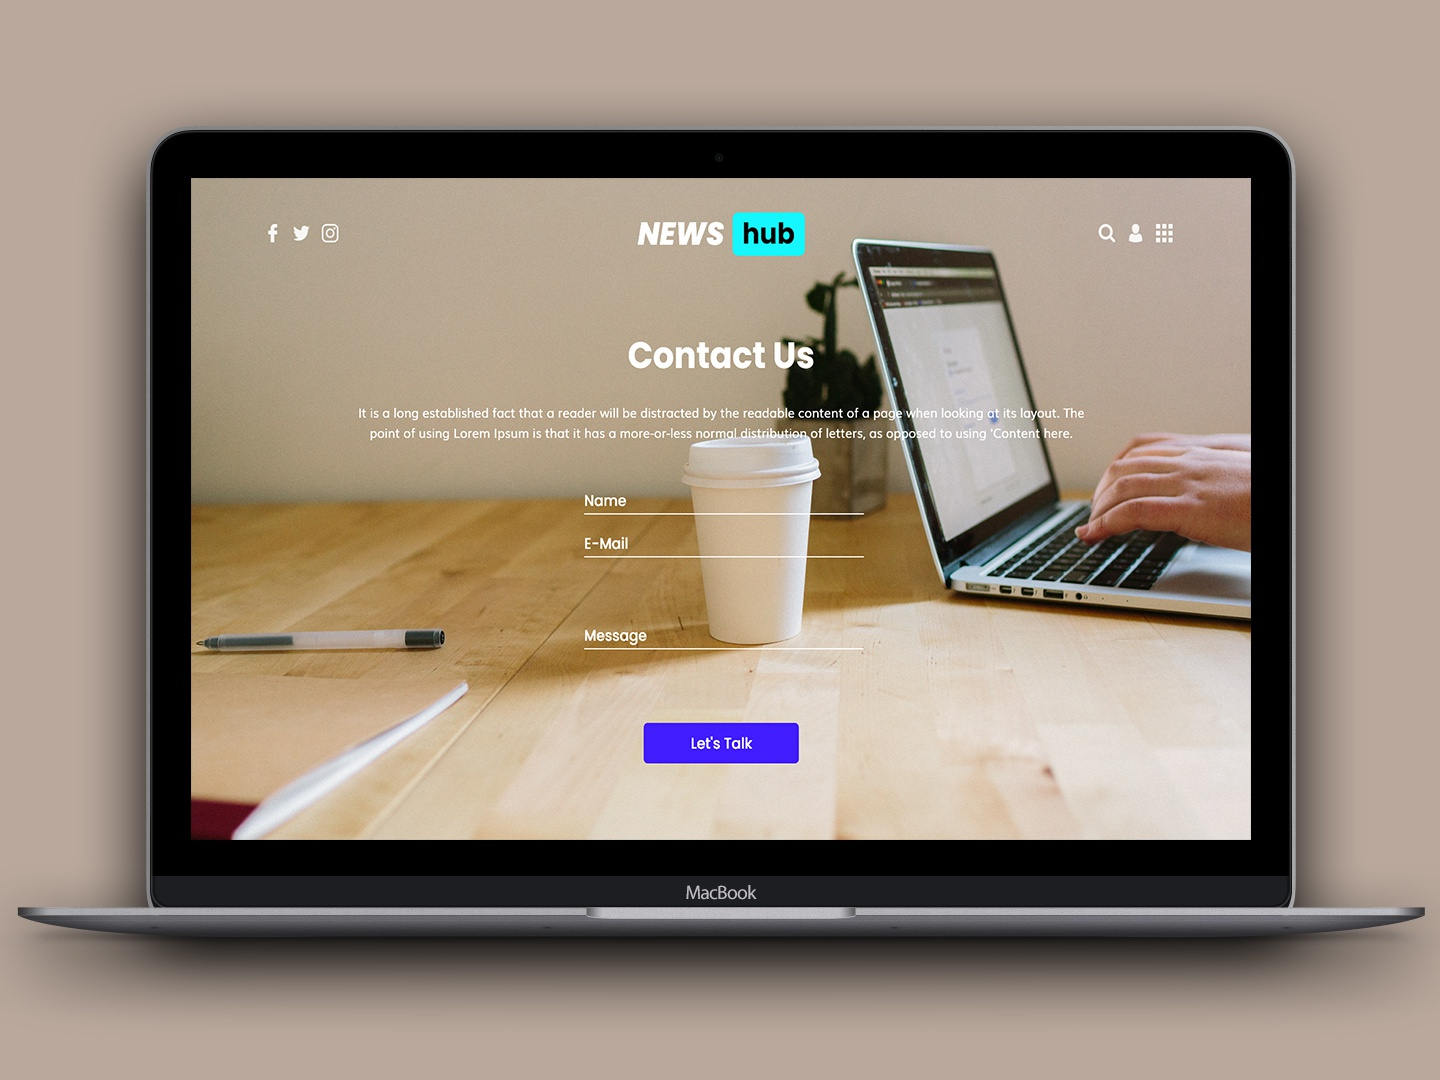 Contact Page NewsHub lets talk site template gwindor web design web site design newshub site design newshub site template newshub contact us contact page contact